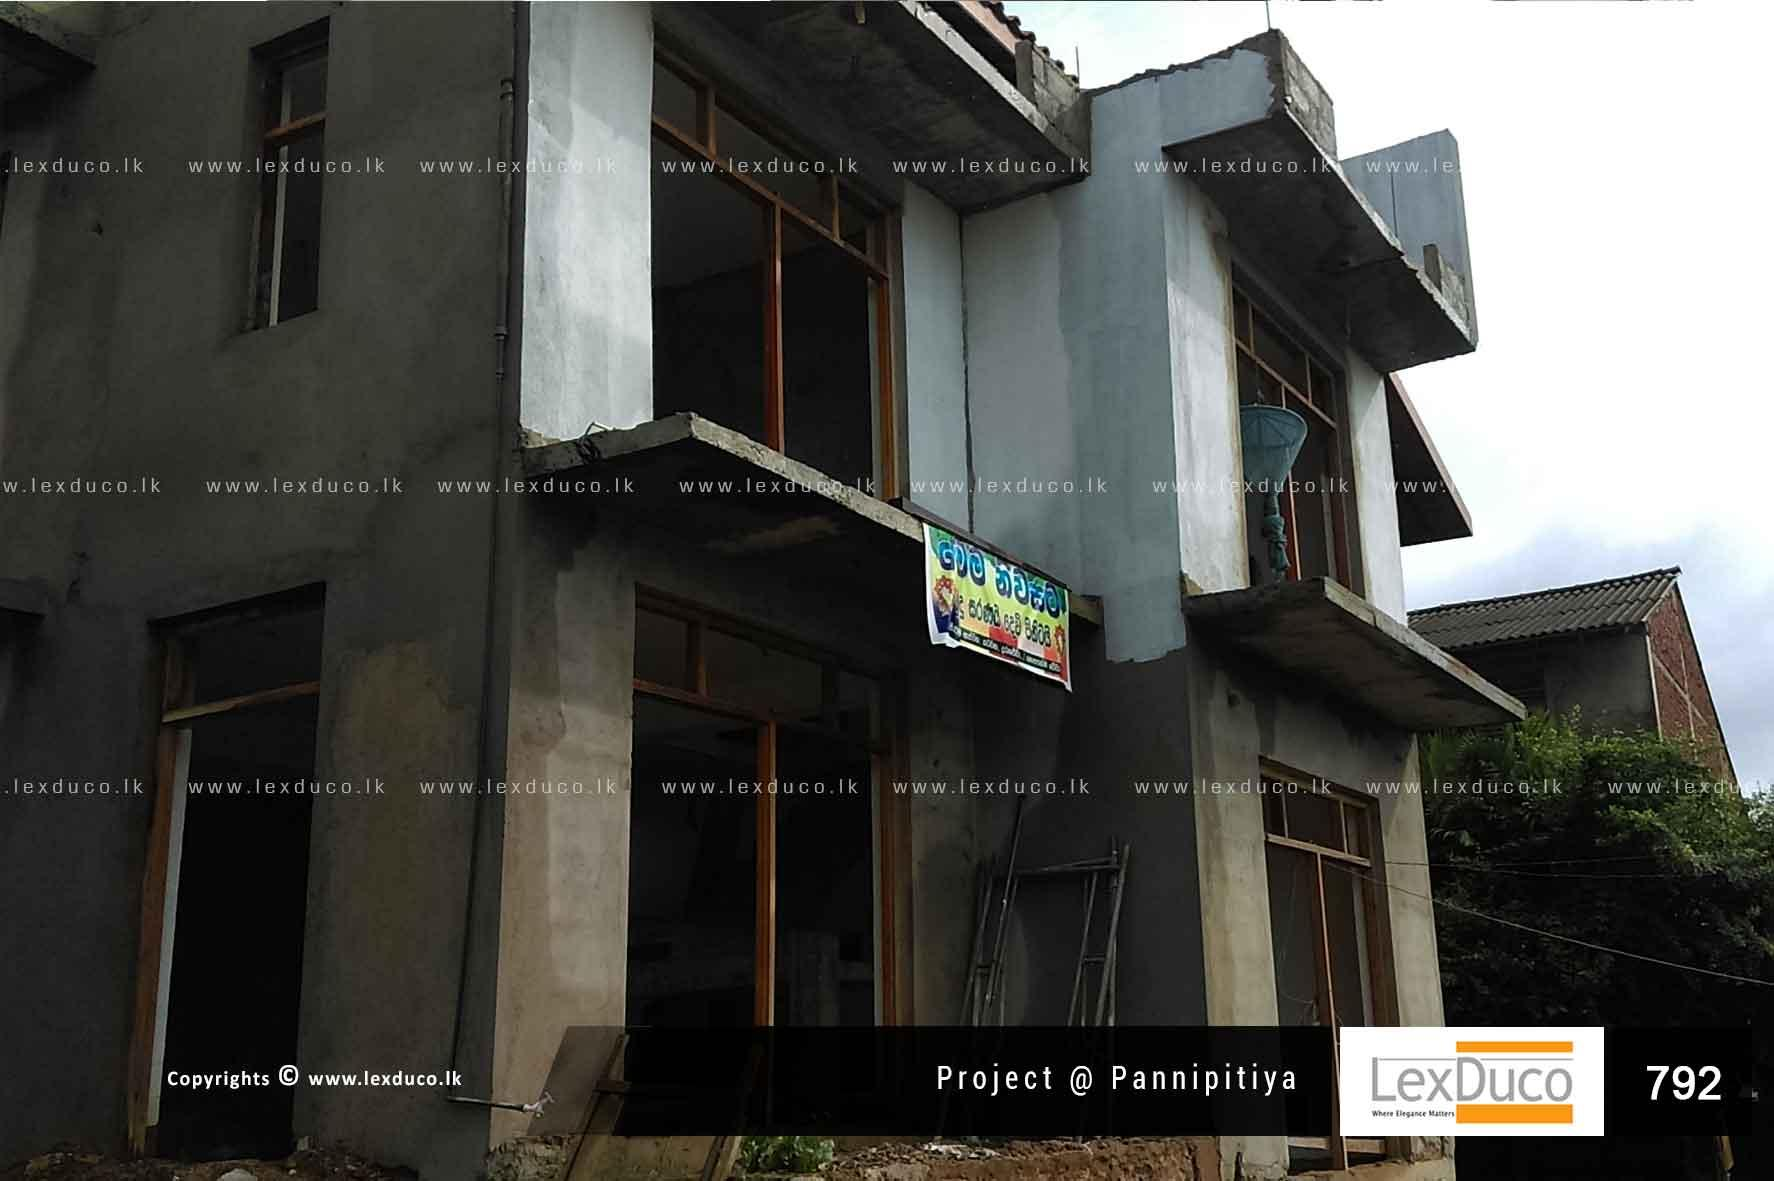 Residential Housing Project at Pannipitiya | Lex Duco